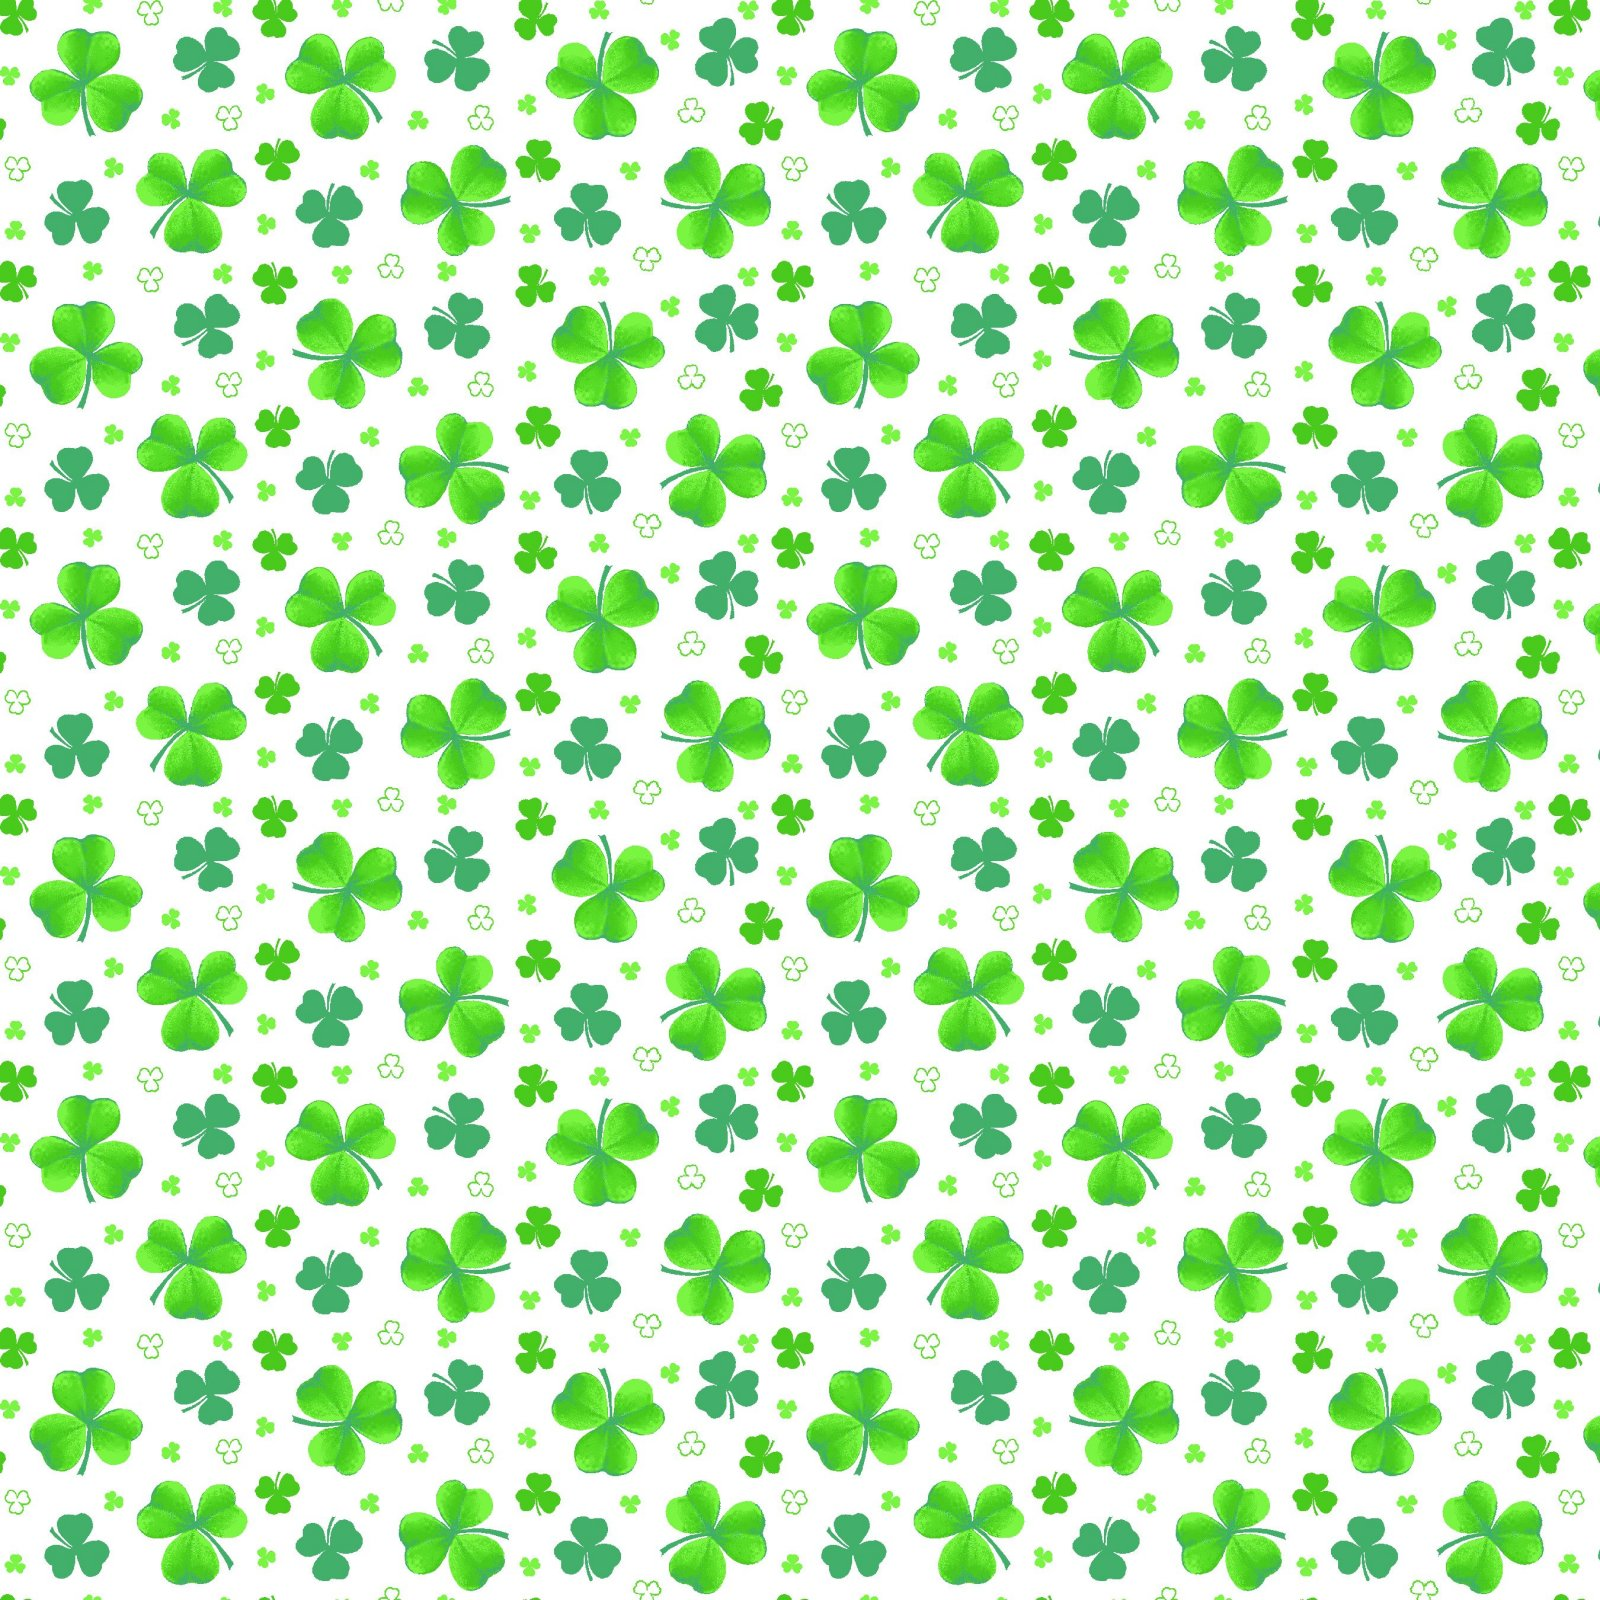 HG-Pot of Gold 9368-16 Green - Tossed Clover